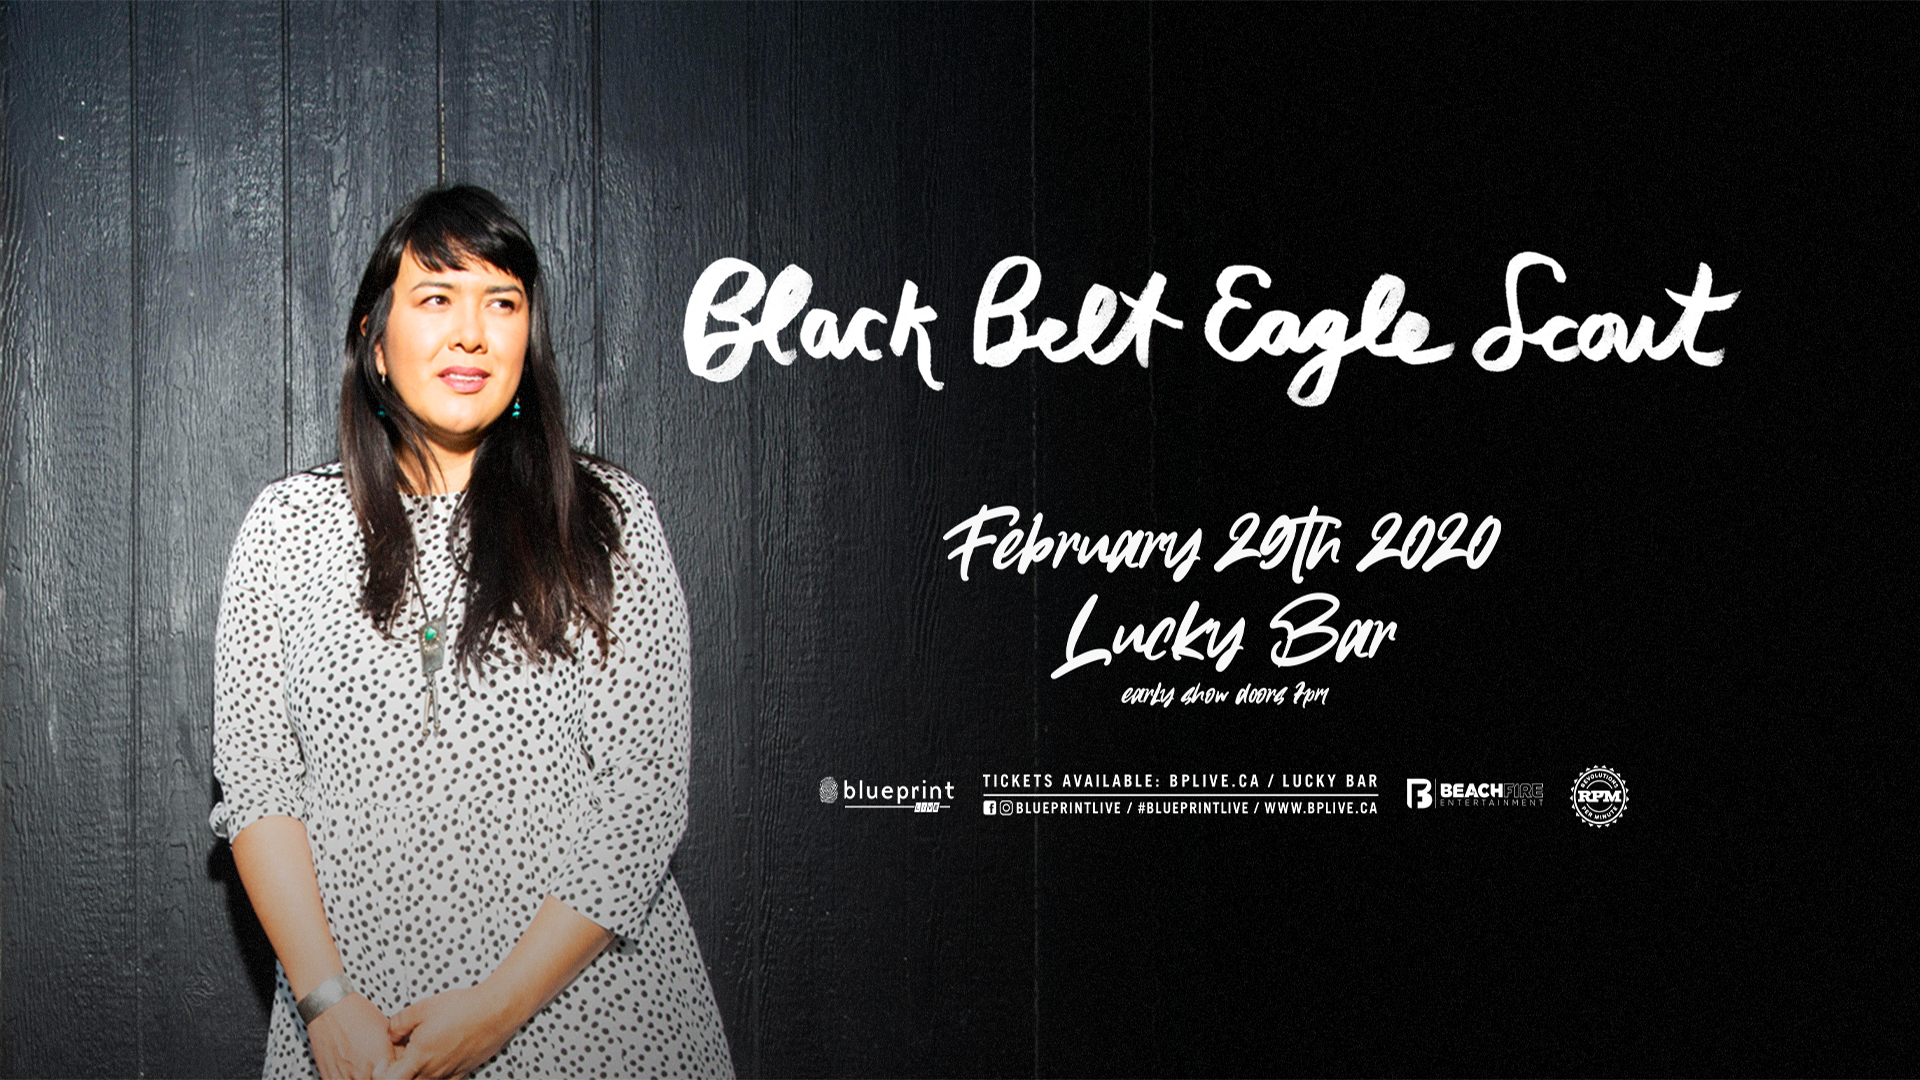 Black Belt Eagle ScoutFebruary 29, 2020 | Lucky Bar